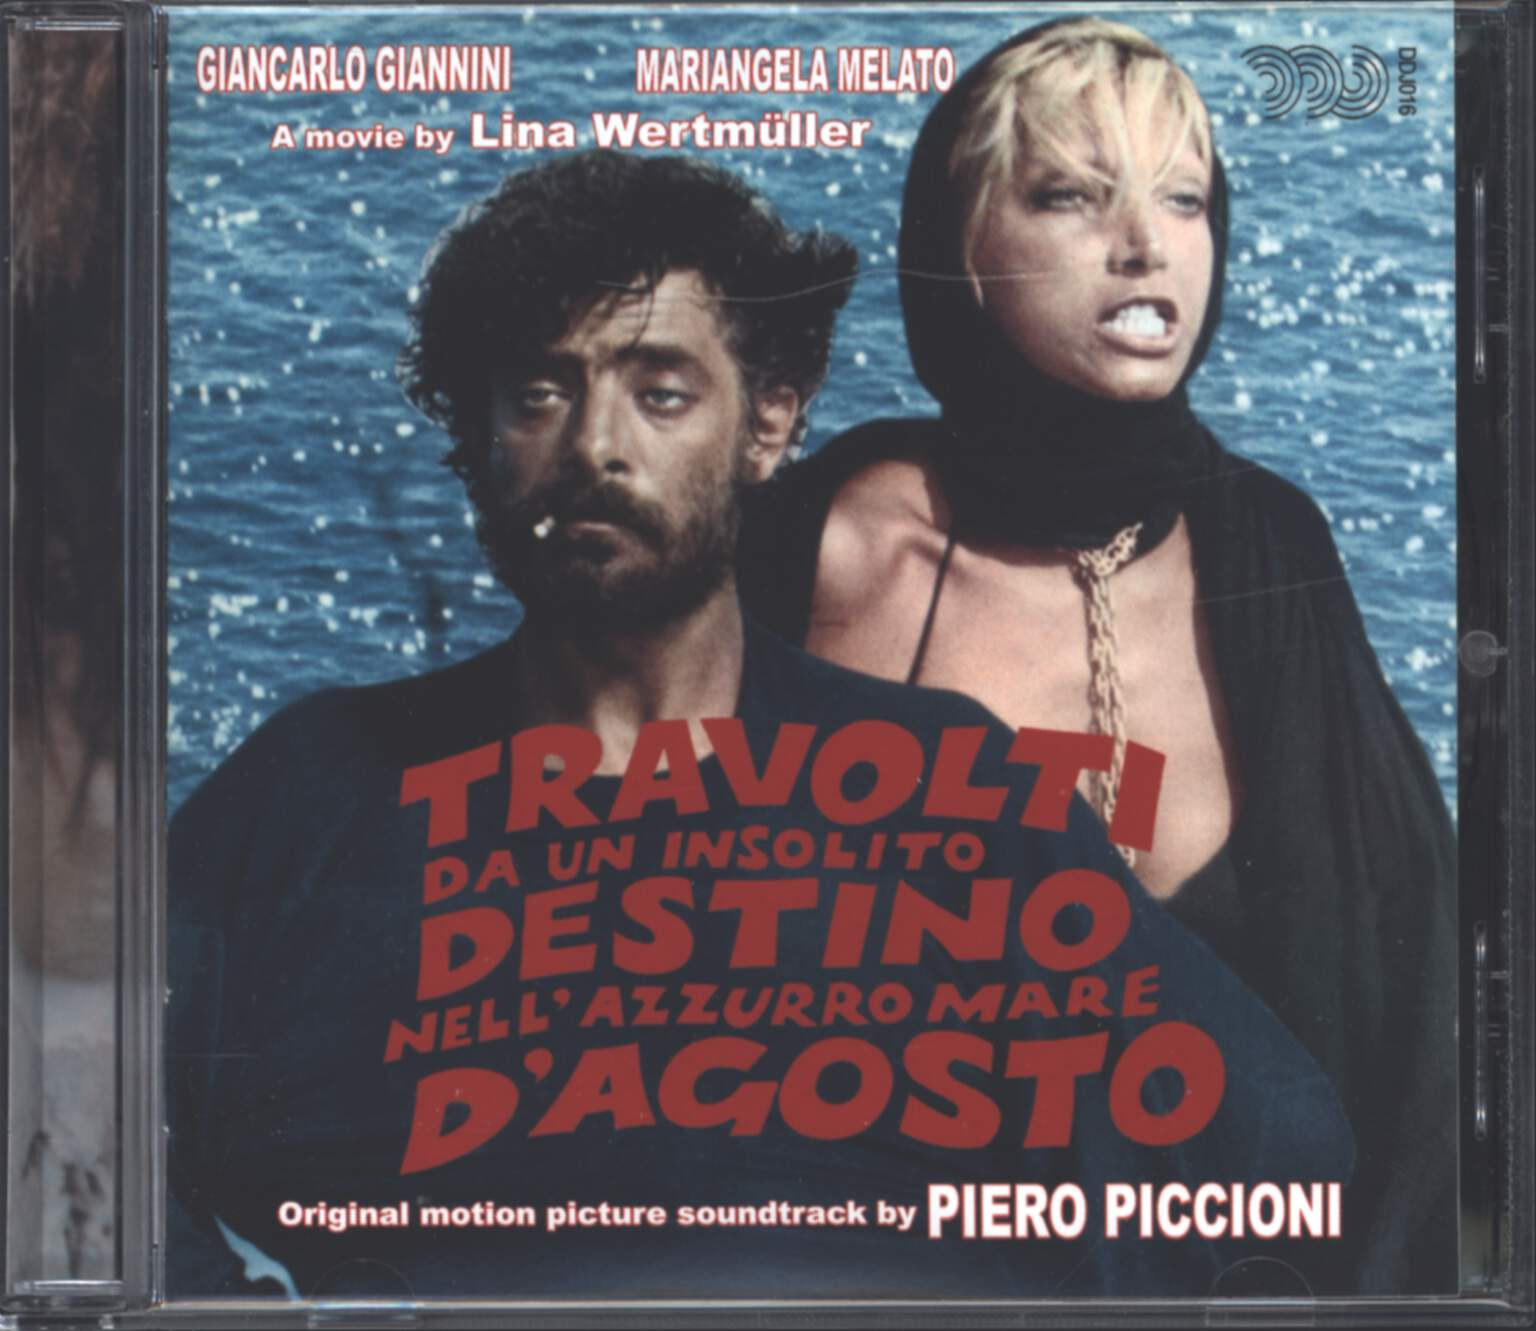 Piero Piccioni: Travolti Da Un Insolito Destino Nell'Azzurro Mare D'Agosto (Original Motion Picture Soundtrack), CD